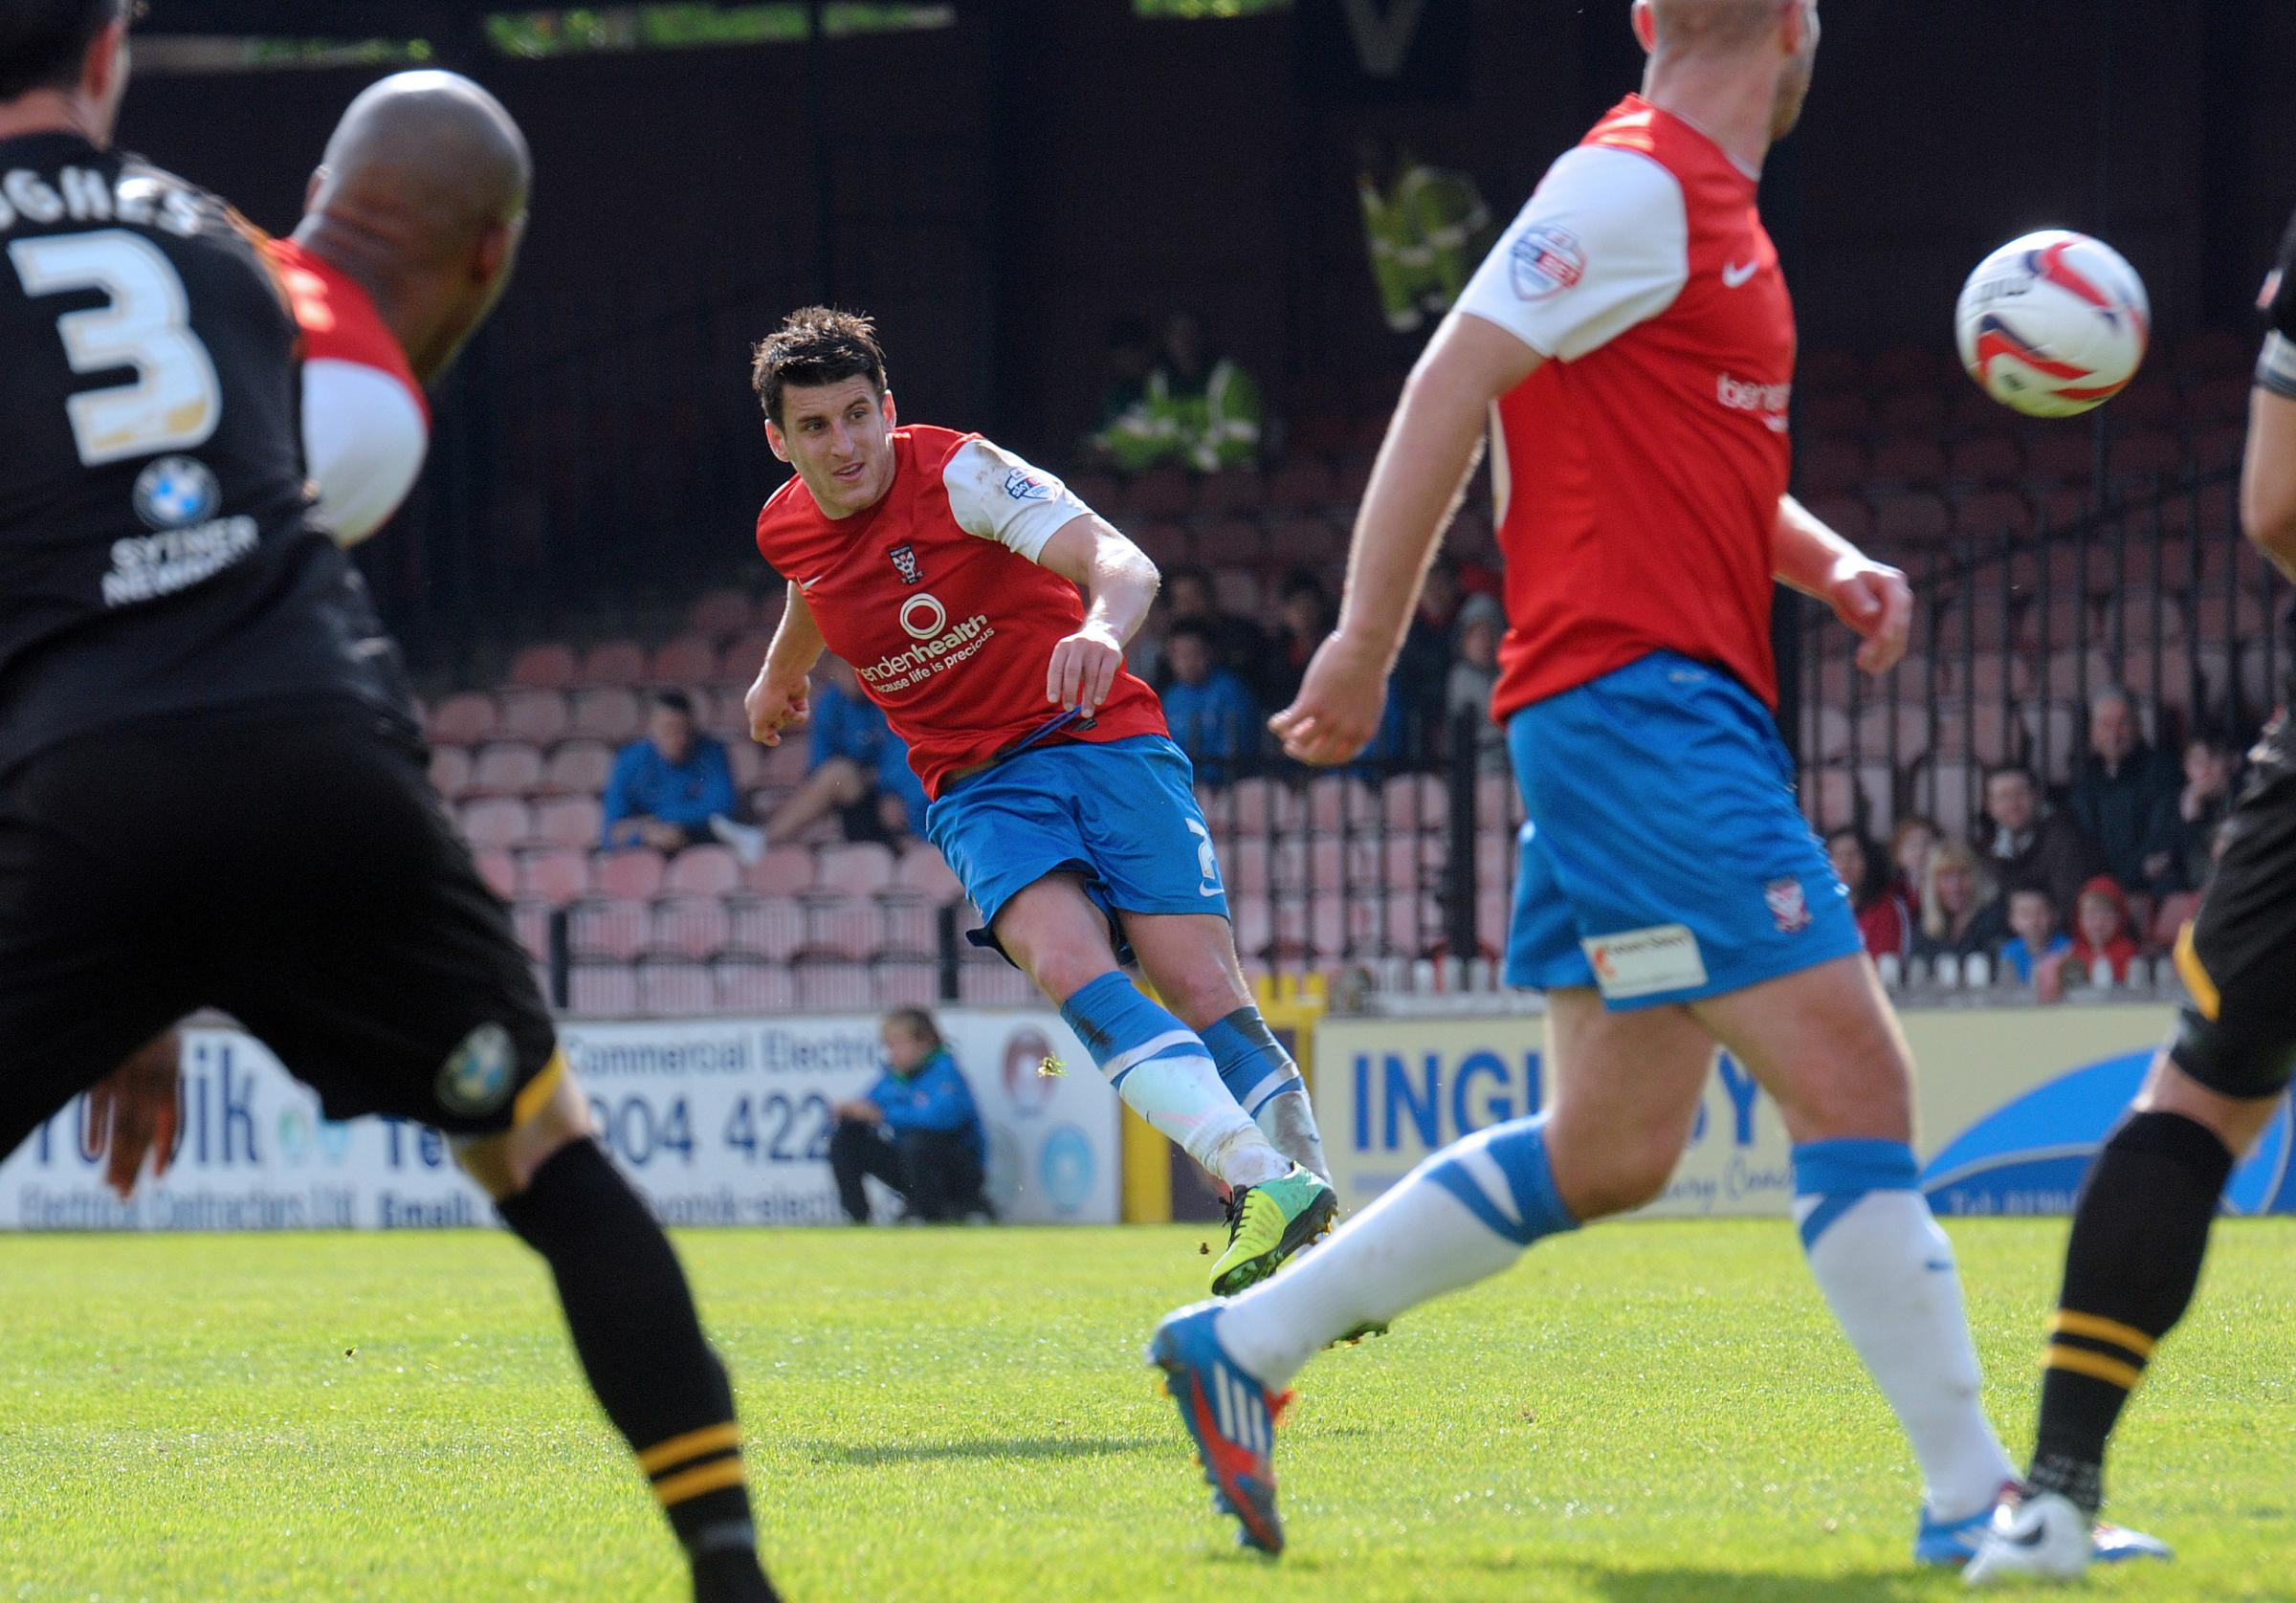 York City 1, Newport County 0